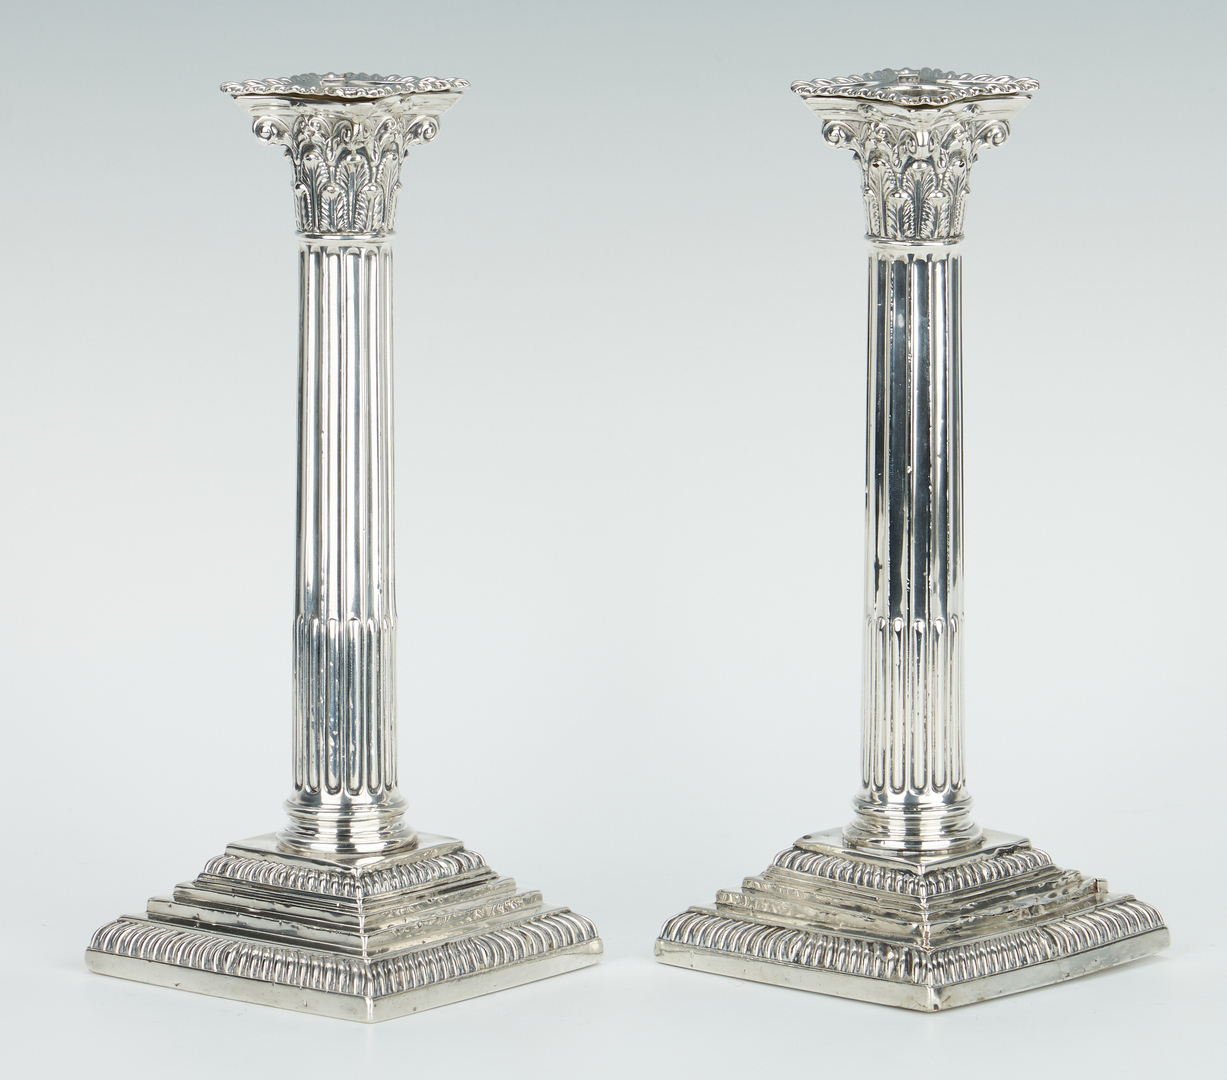 Lot 246: 13 Sterling Silver Items, incl. Candlesticks & Salts